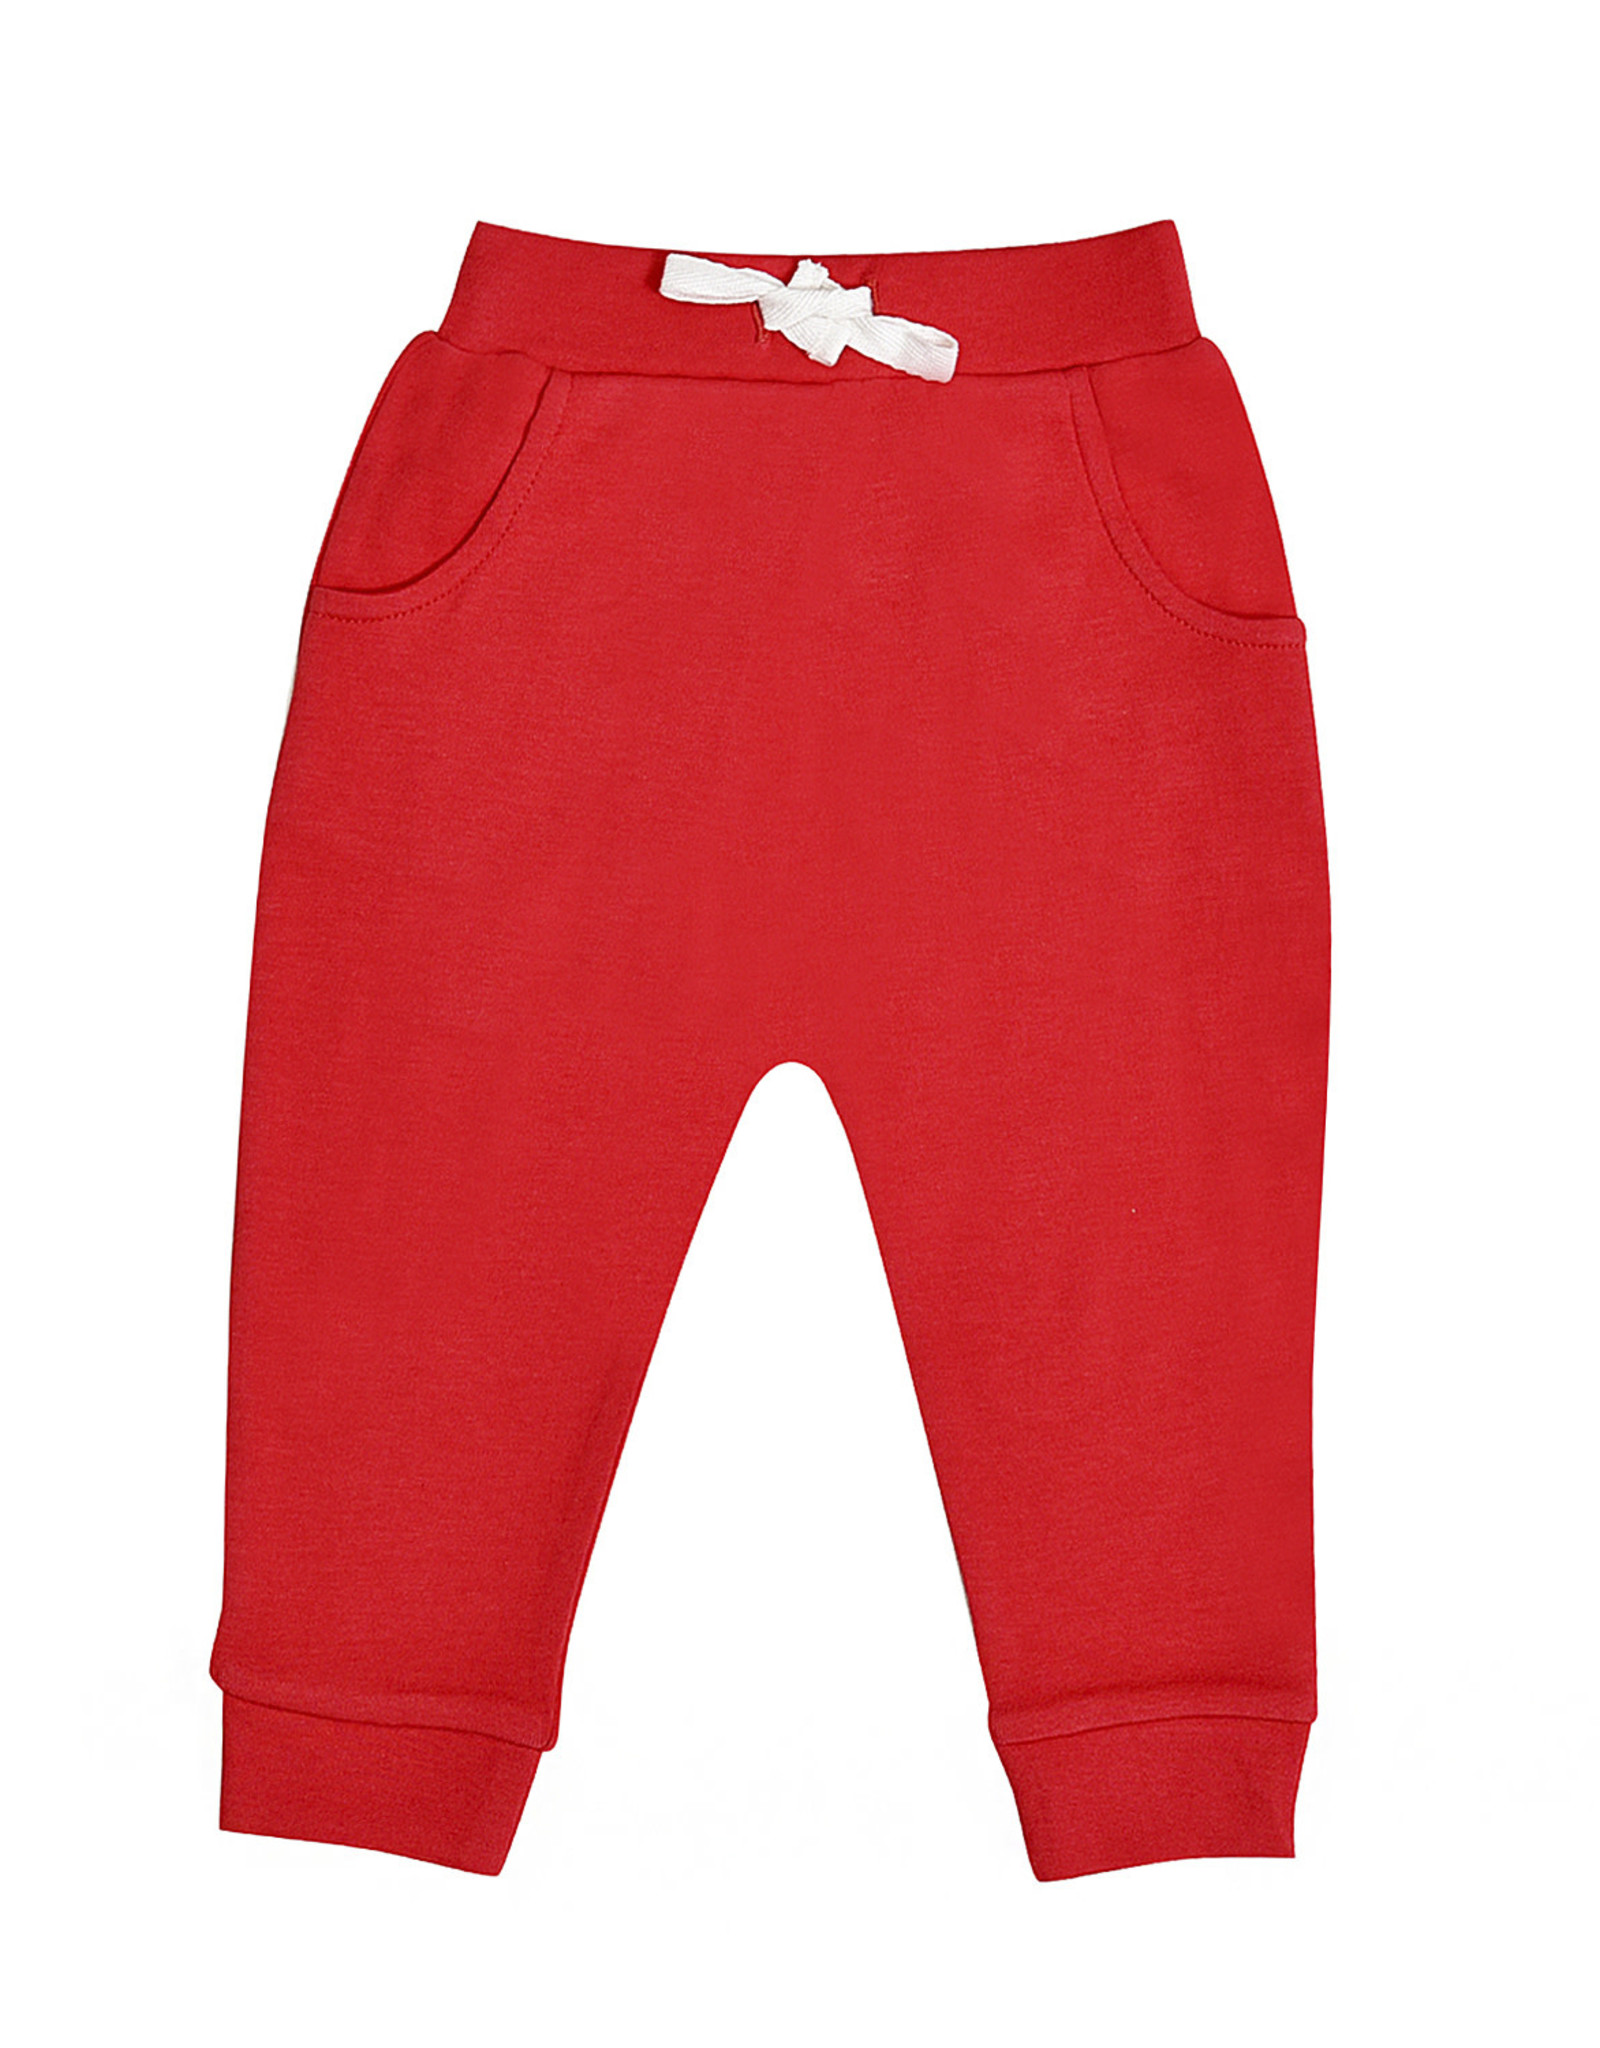 Finn & Emma Red Rover Lounge Pants